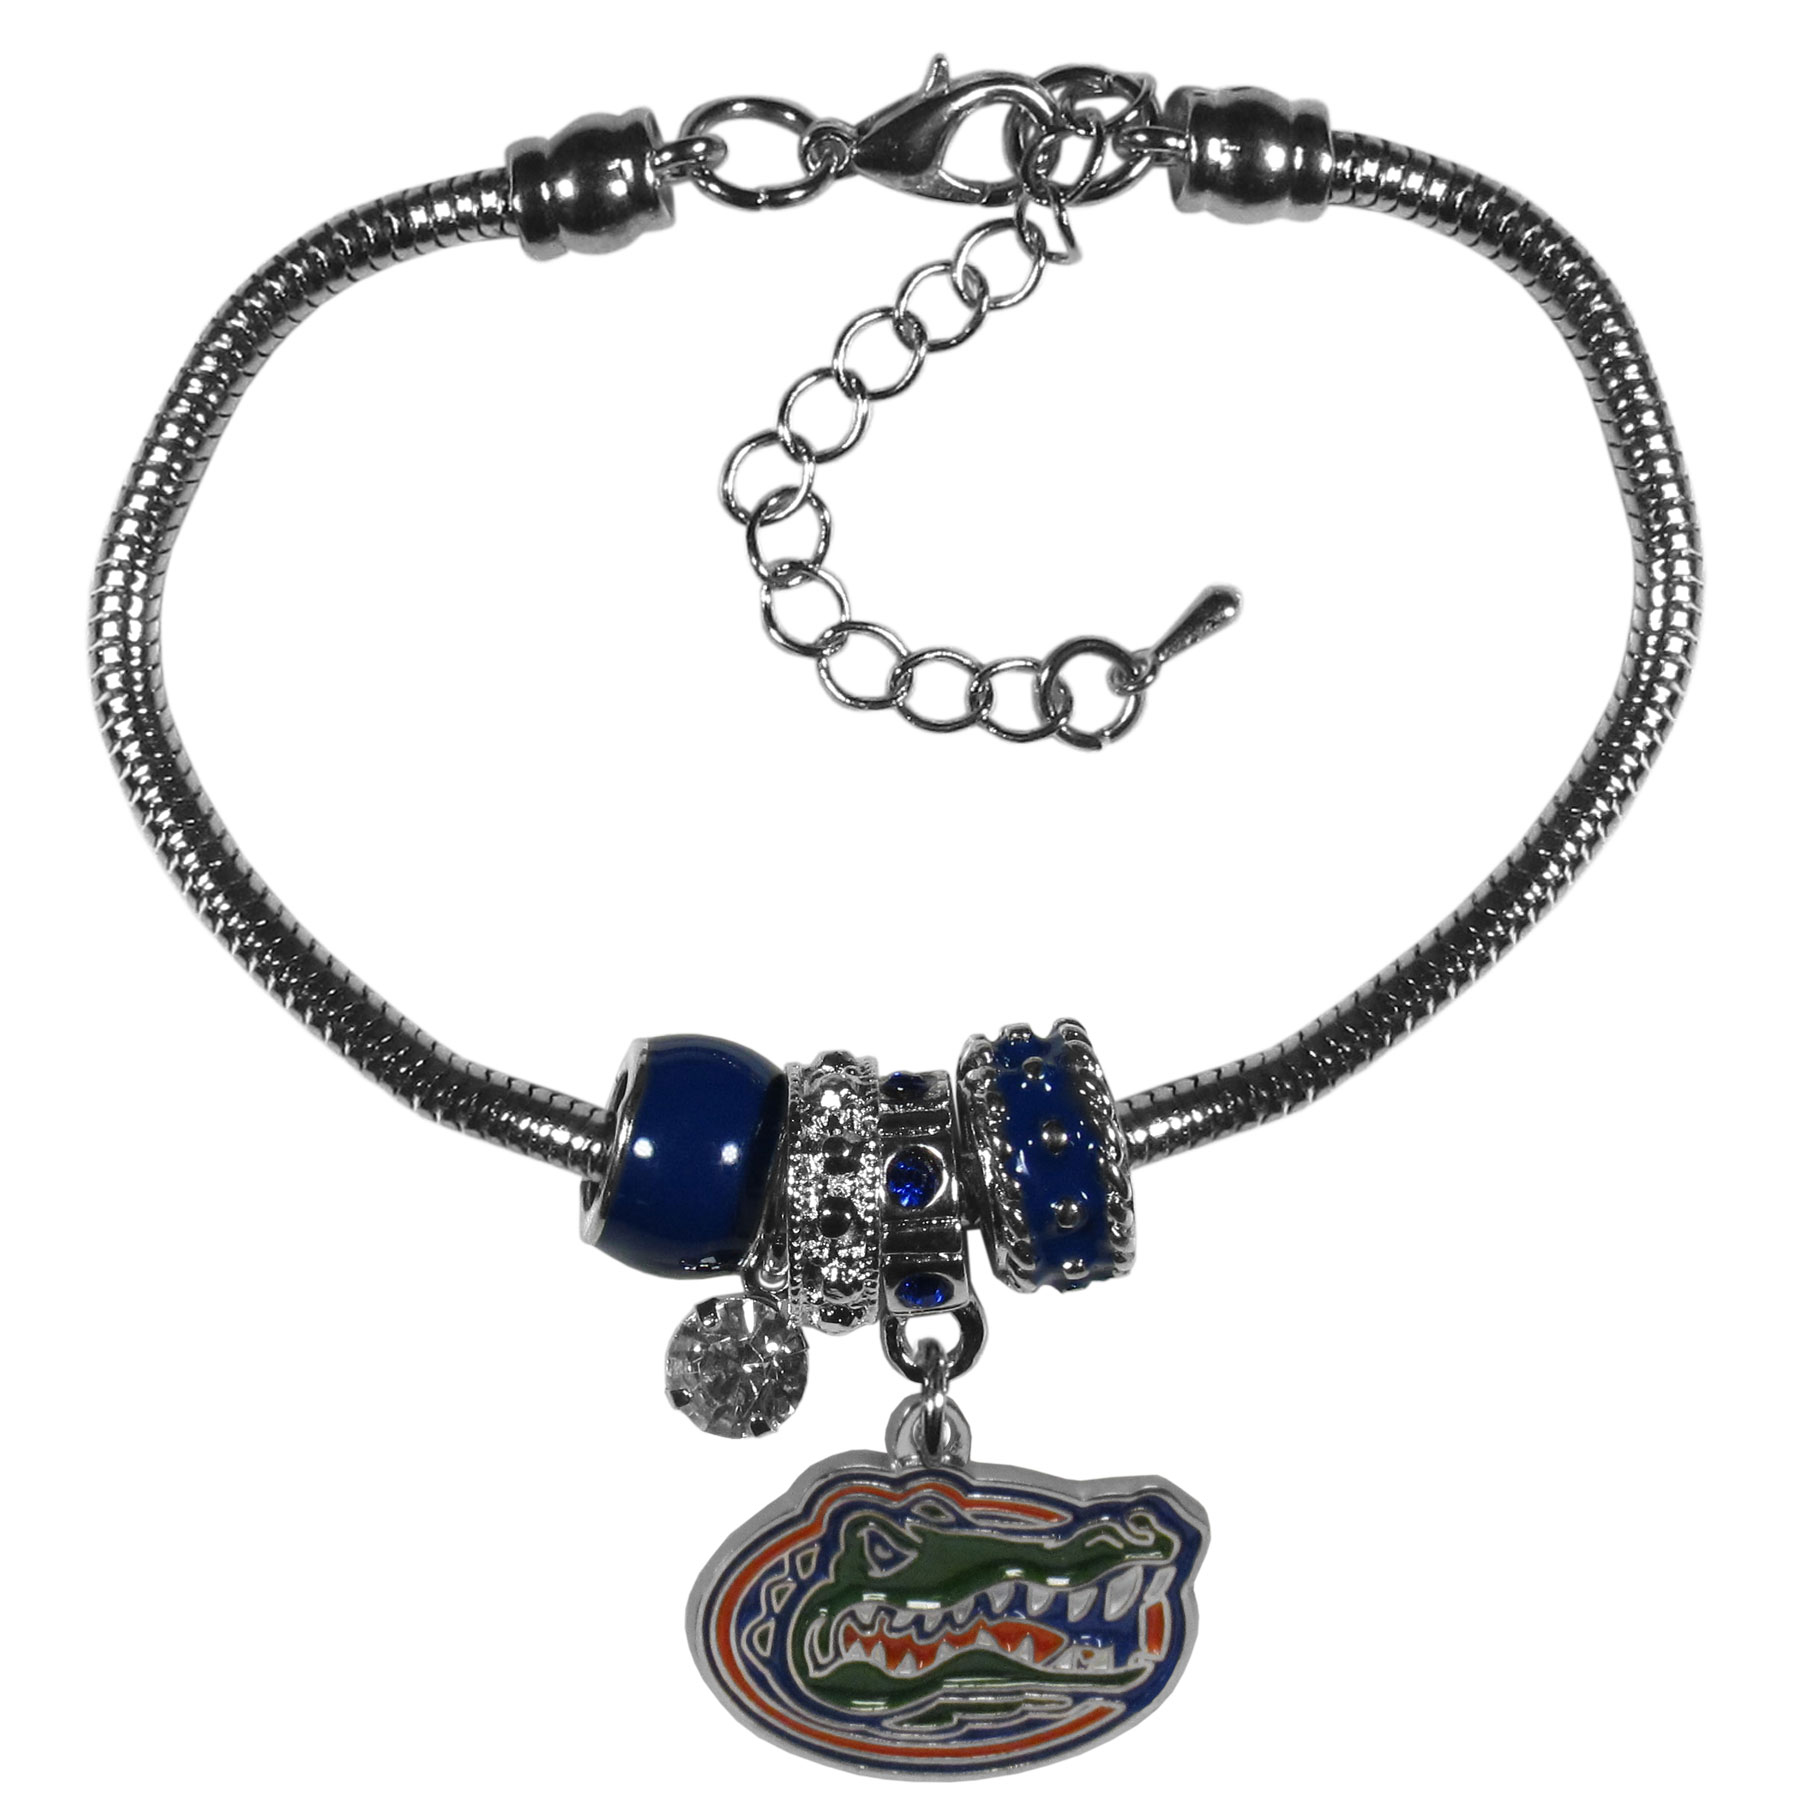 Florida Gators Euro Bead Bracelet - We have combined the wildly popular Euro style beads with your favorite team to create our  Florida Gators bead bracelet. The 7.5 inch snake chain with 2 inch extender features 4 Euro beads with enameled team colors and rhinestone accents with a high polish, nickel free charm and rhinestone charm. Perfect way to show off your team pride.